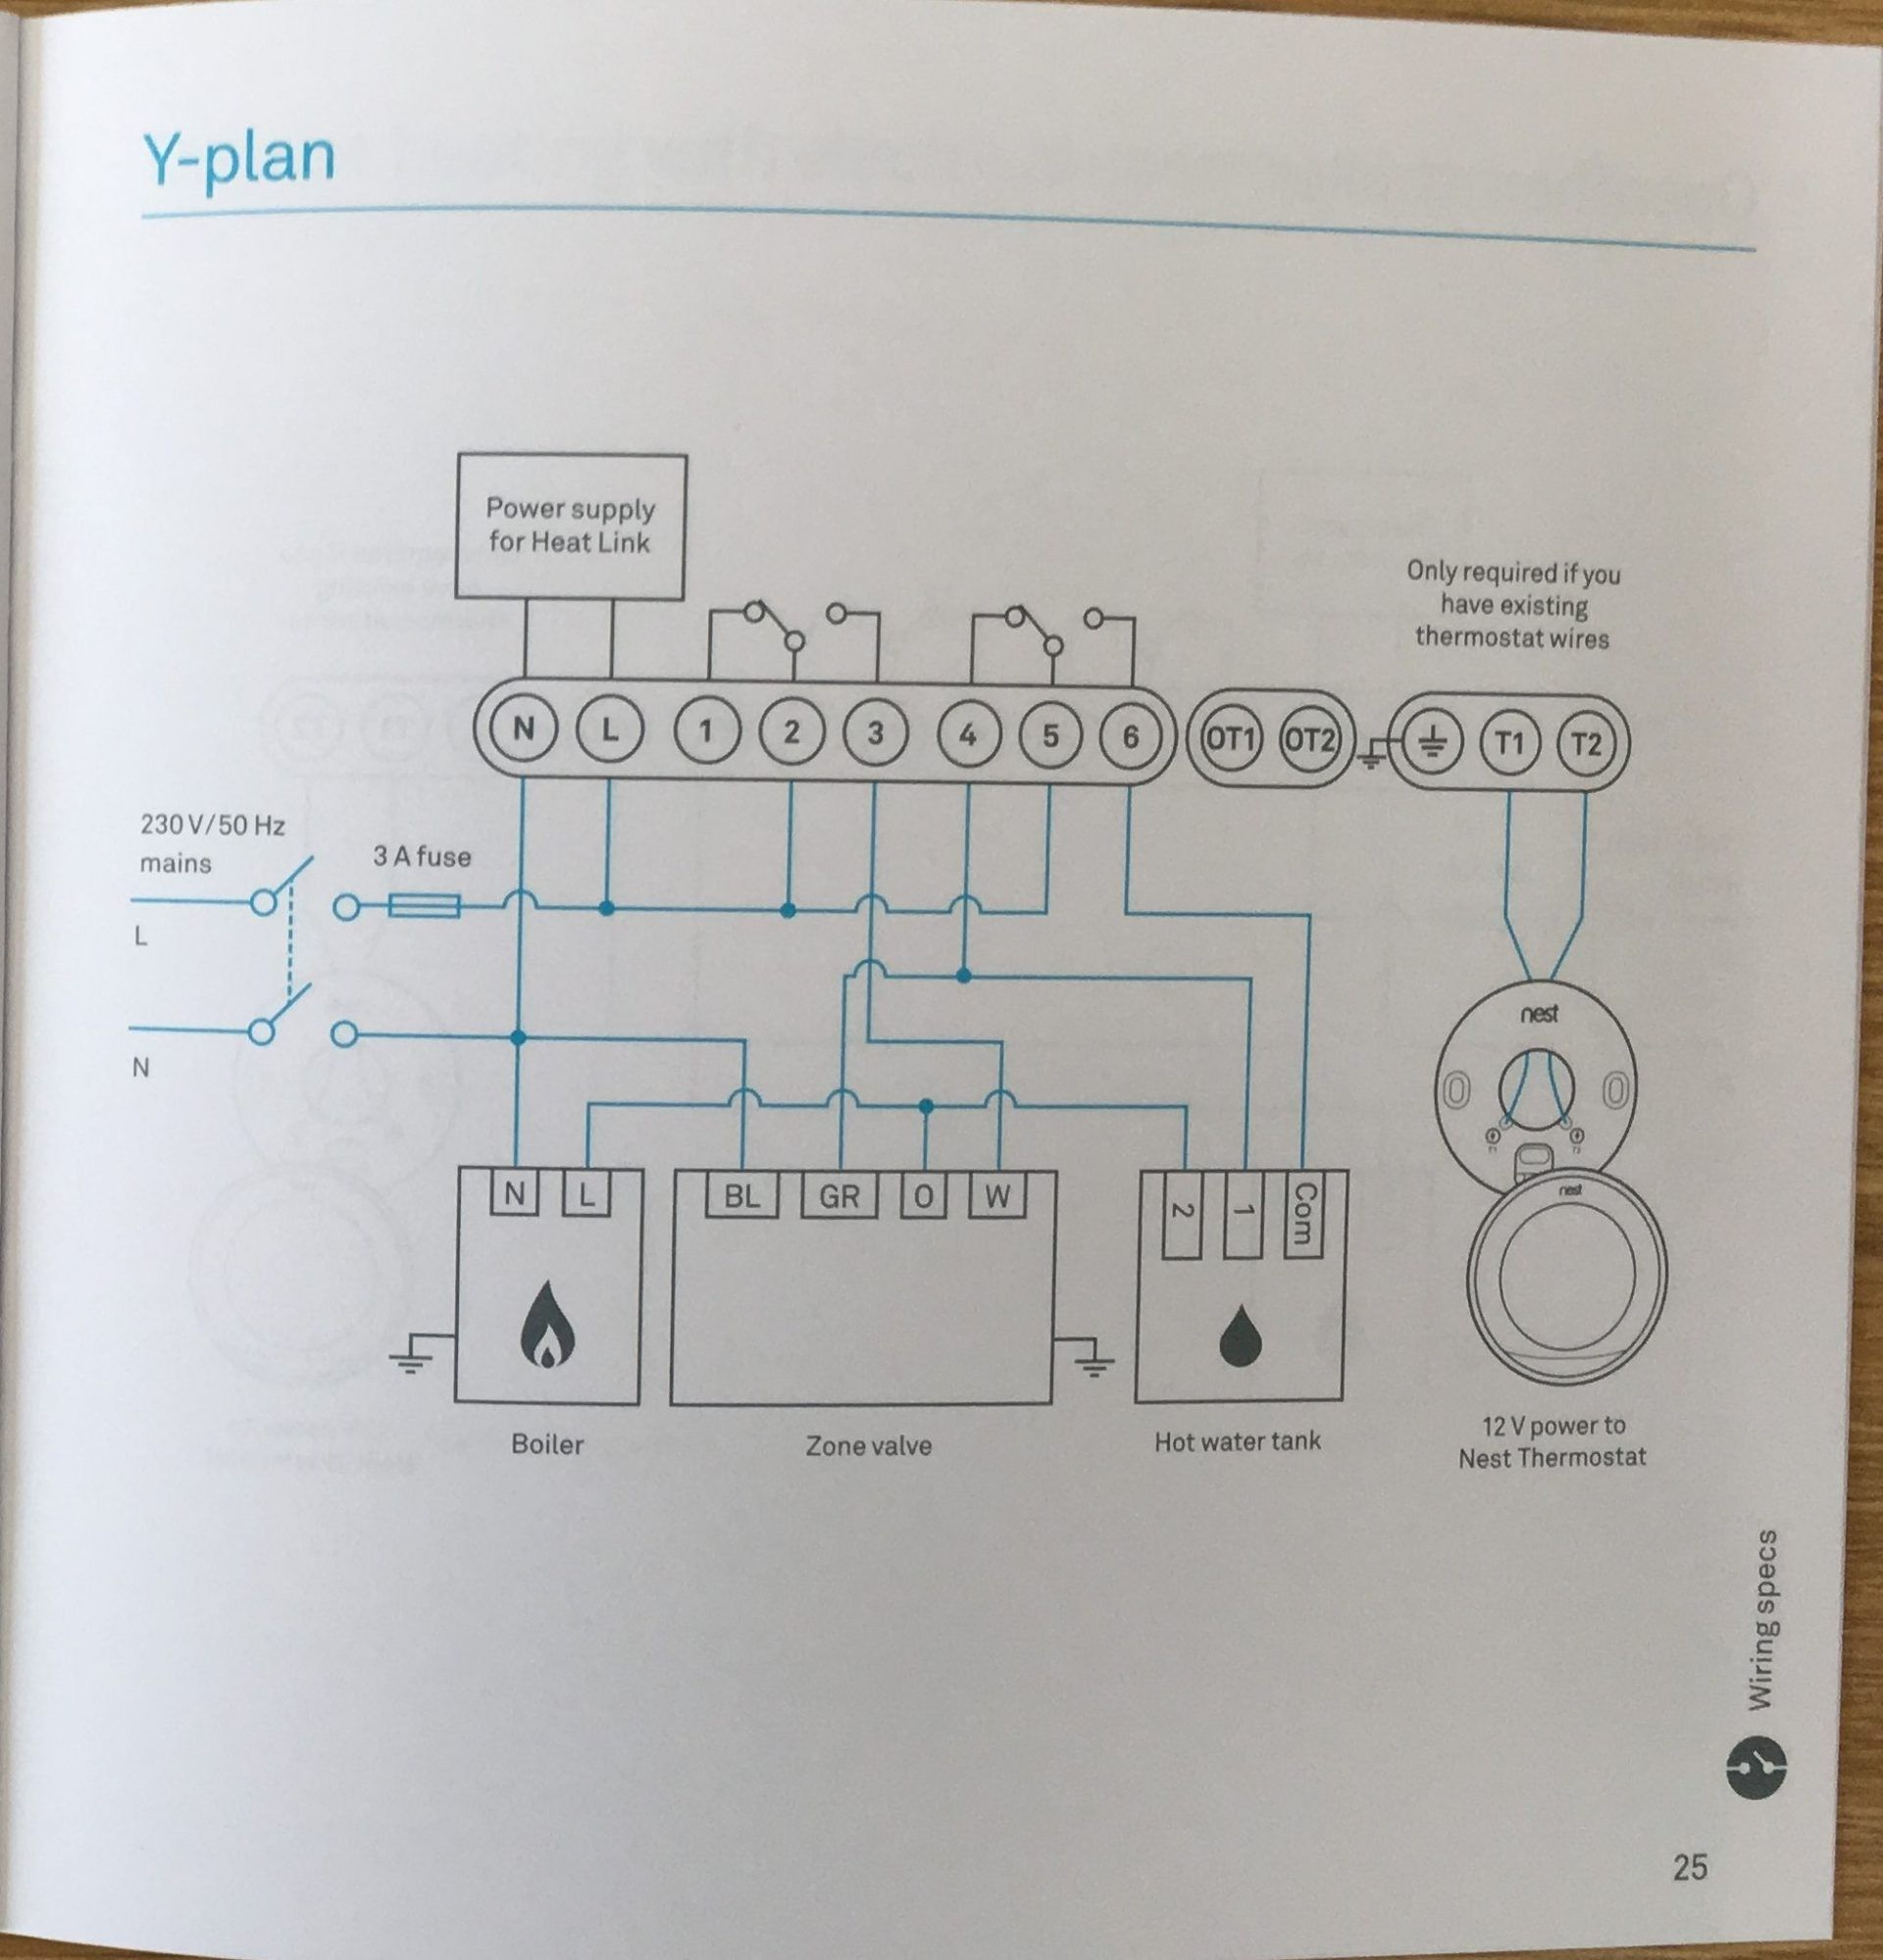 Luxury Wiring Diagram for A Y Plan Heating System